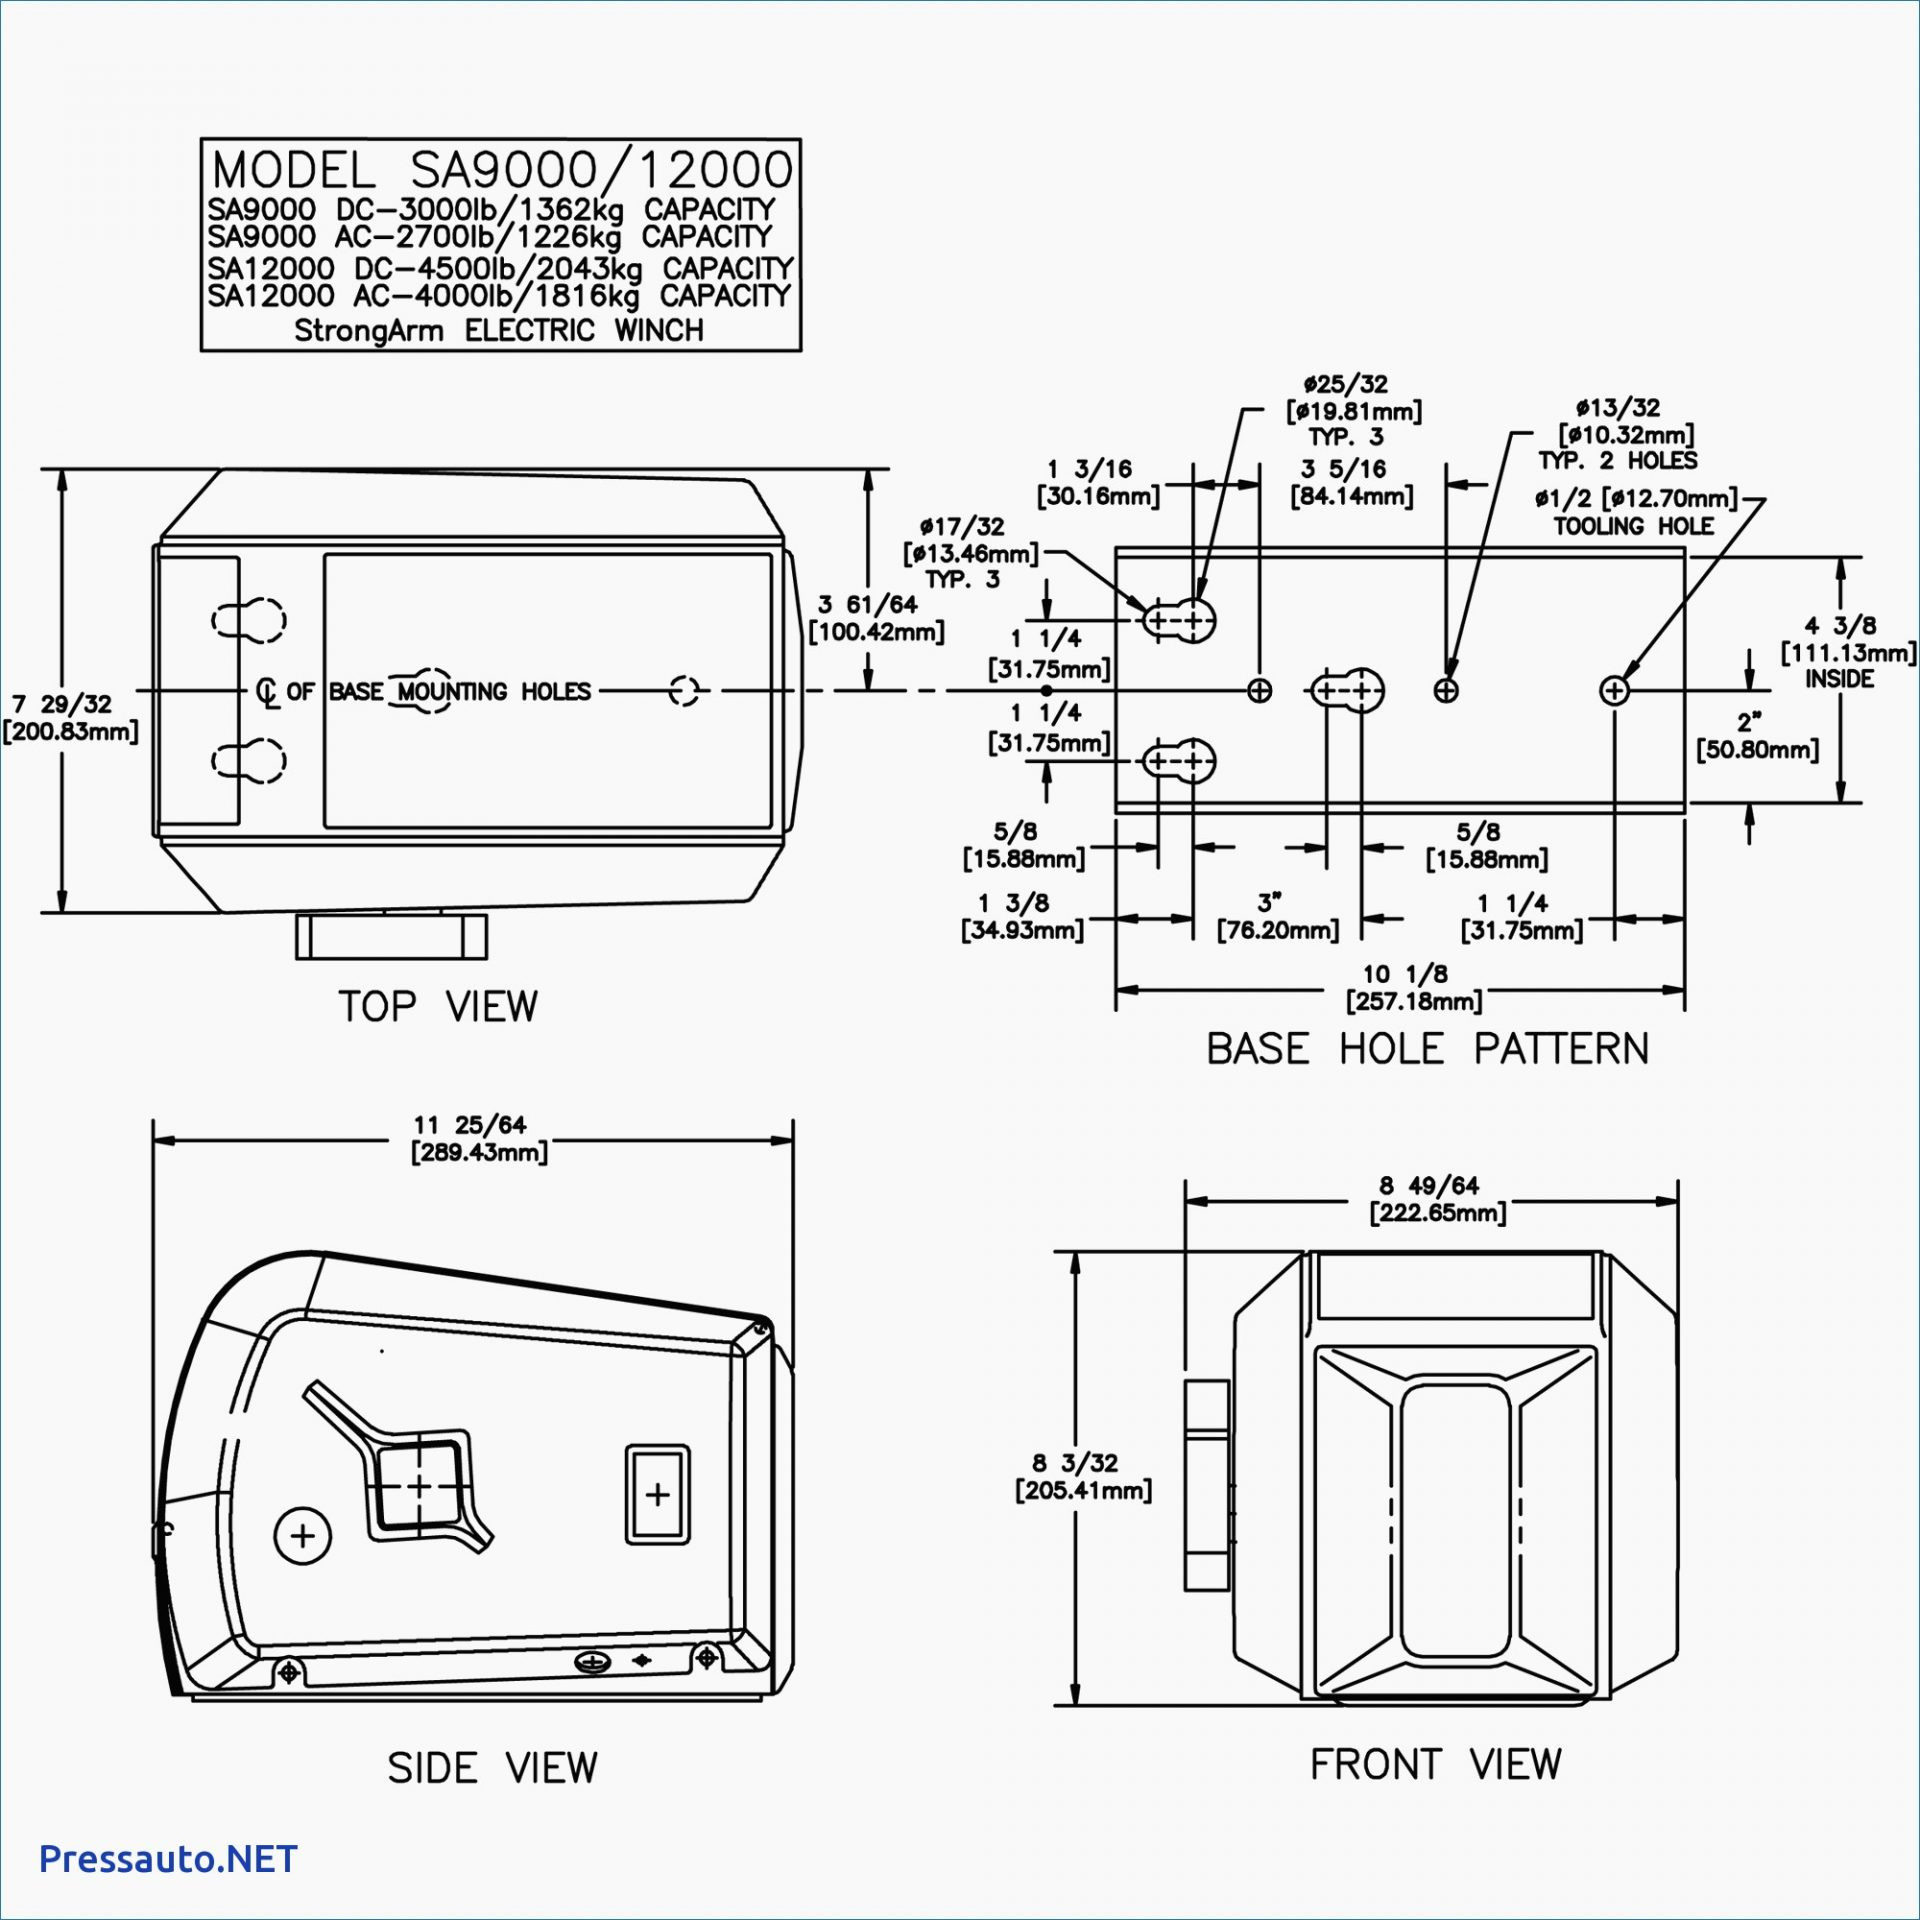 warn 9 5 xp wiring diagram camera obscura winch system library